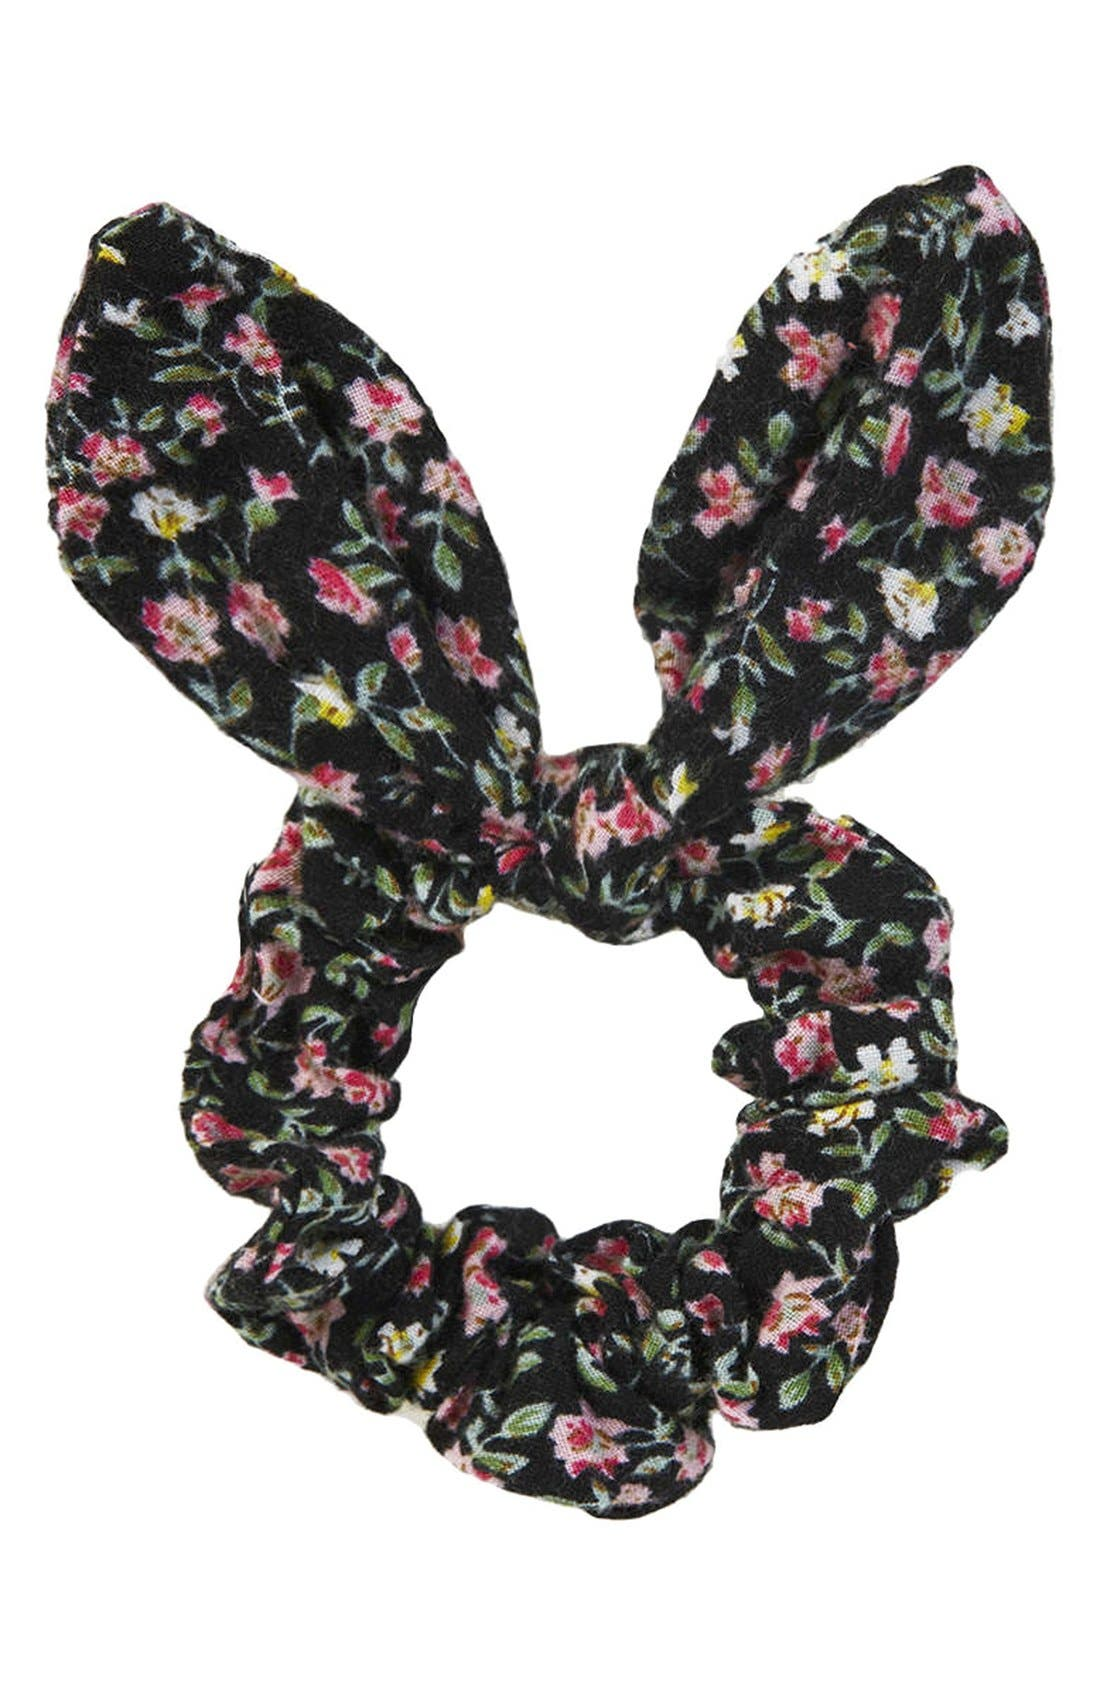 Ditsy Floral Bunny Ears Scrunchie,                             Main thumbnail 1, color,                             001